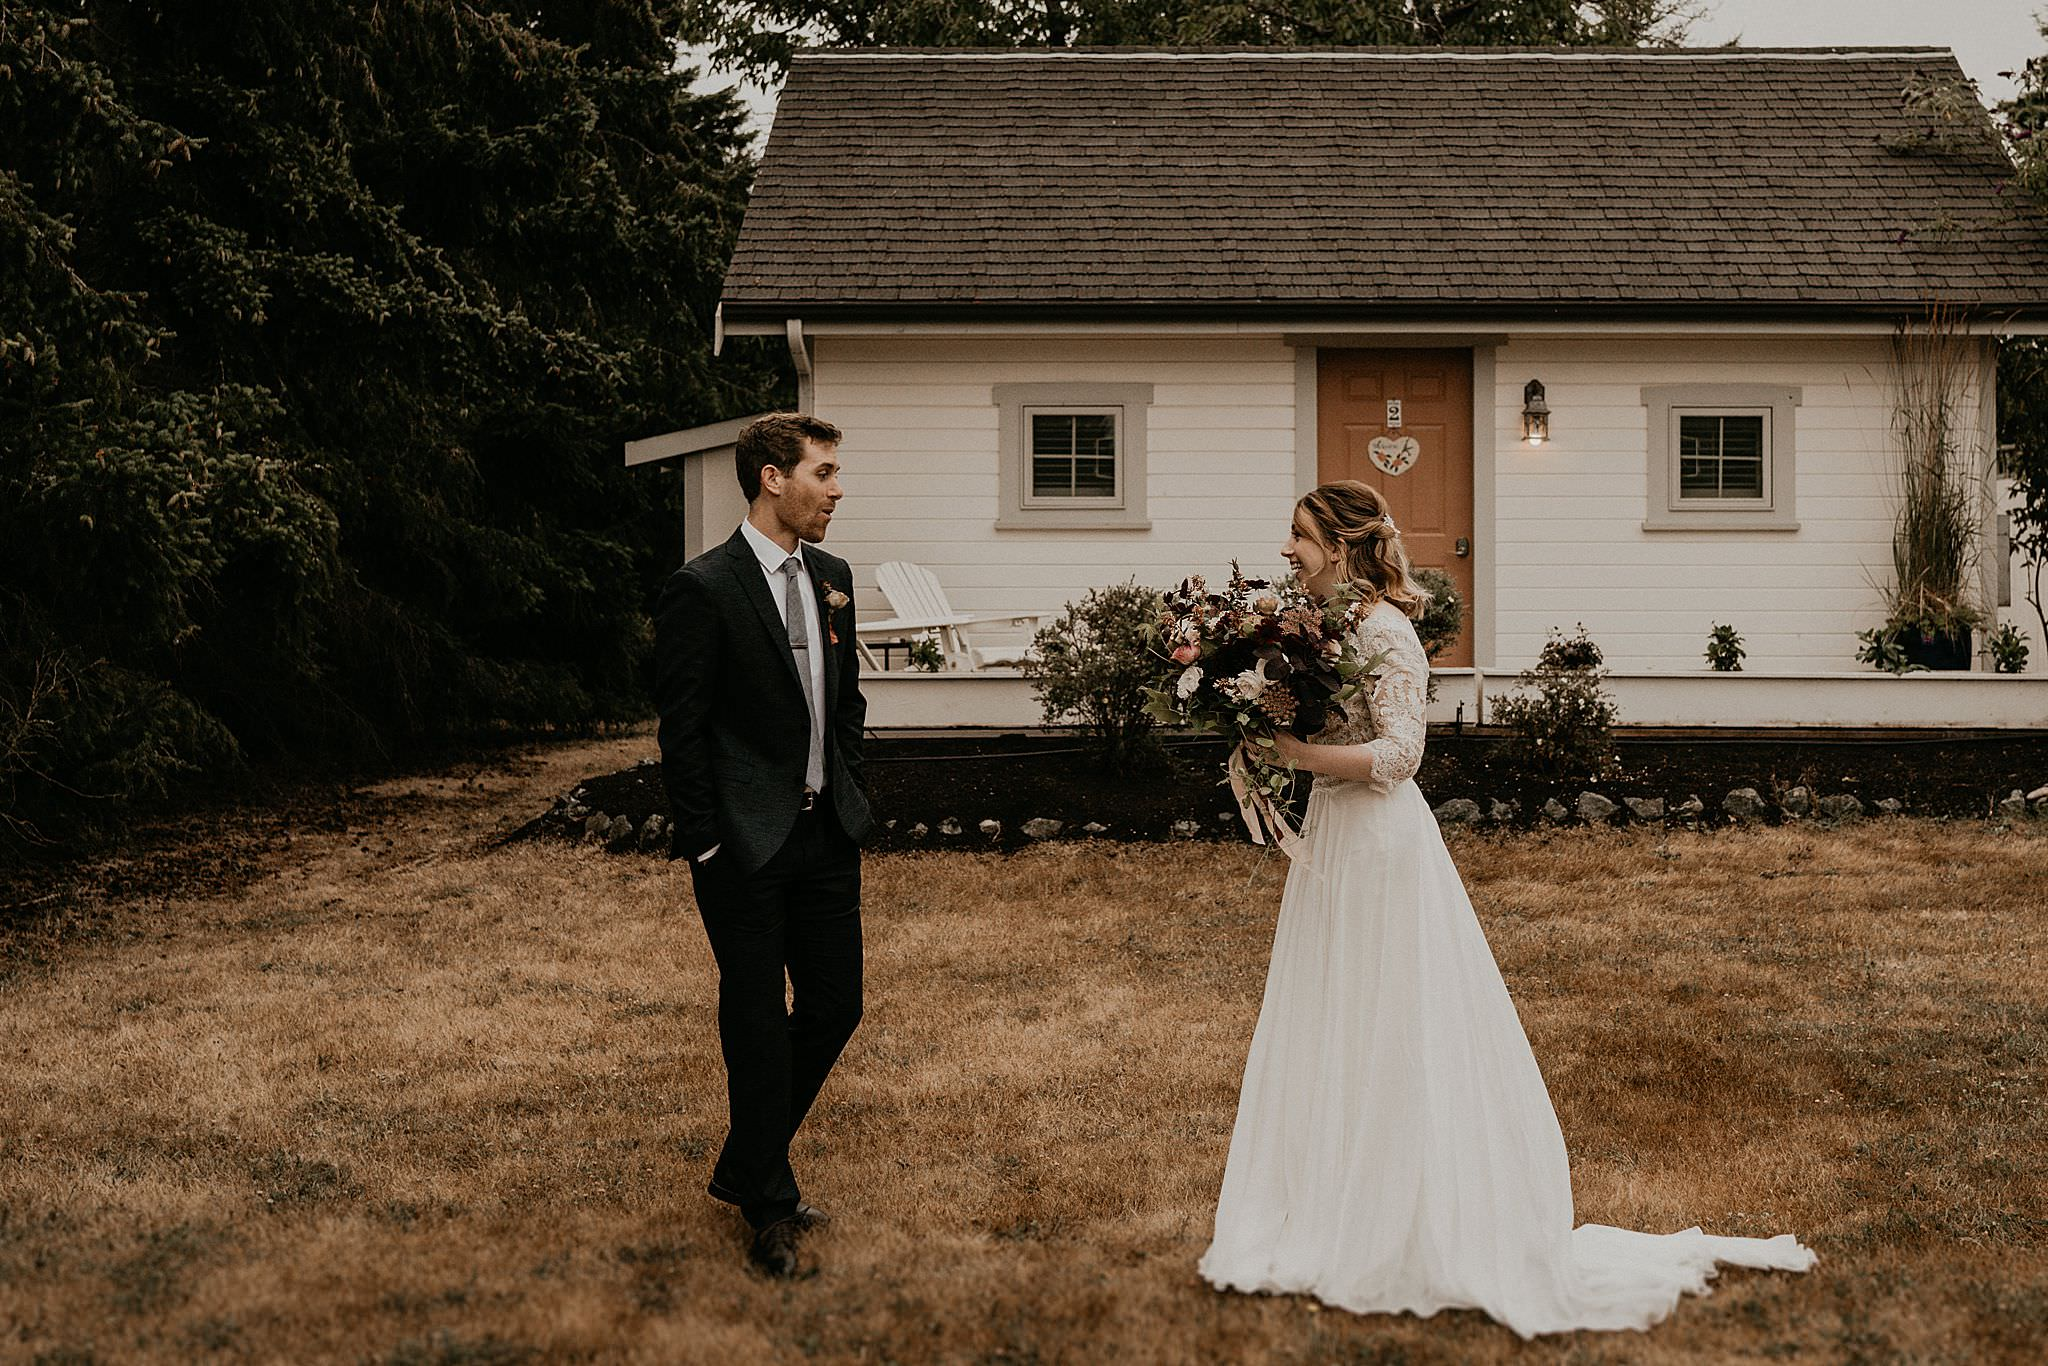 Intimate first look before wedding on Whidbey Island Washington state